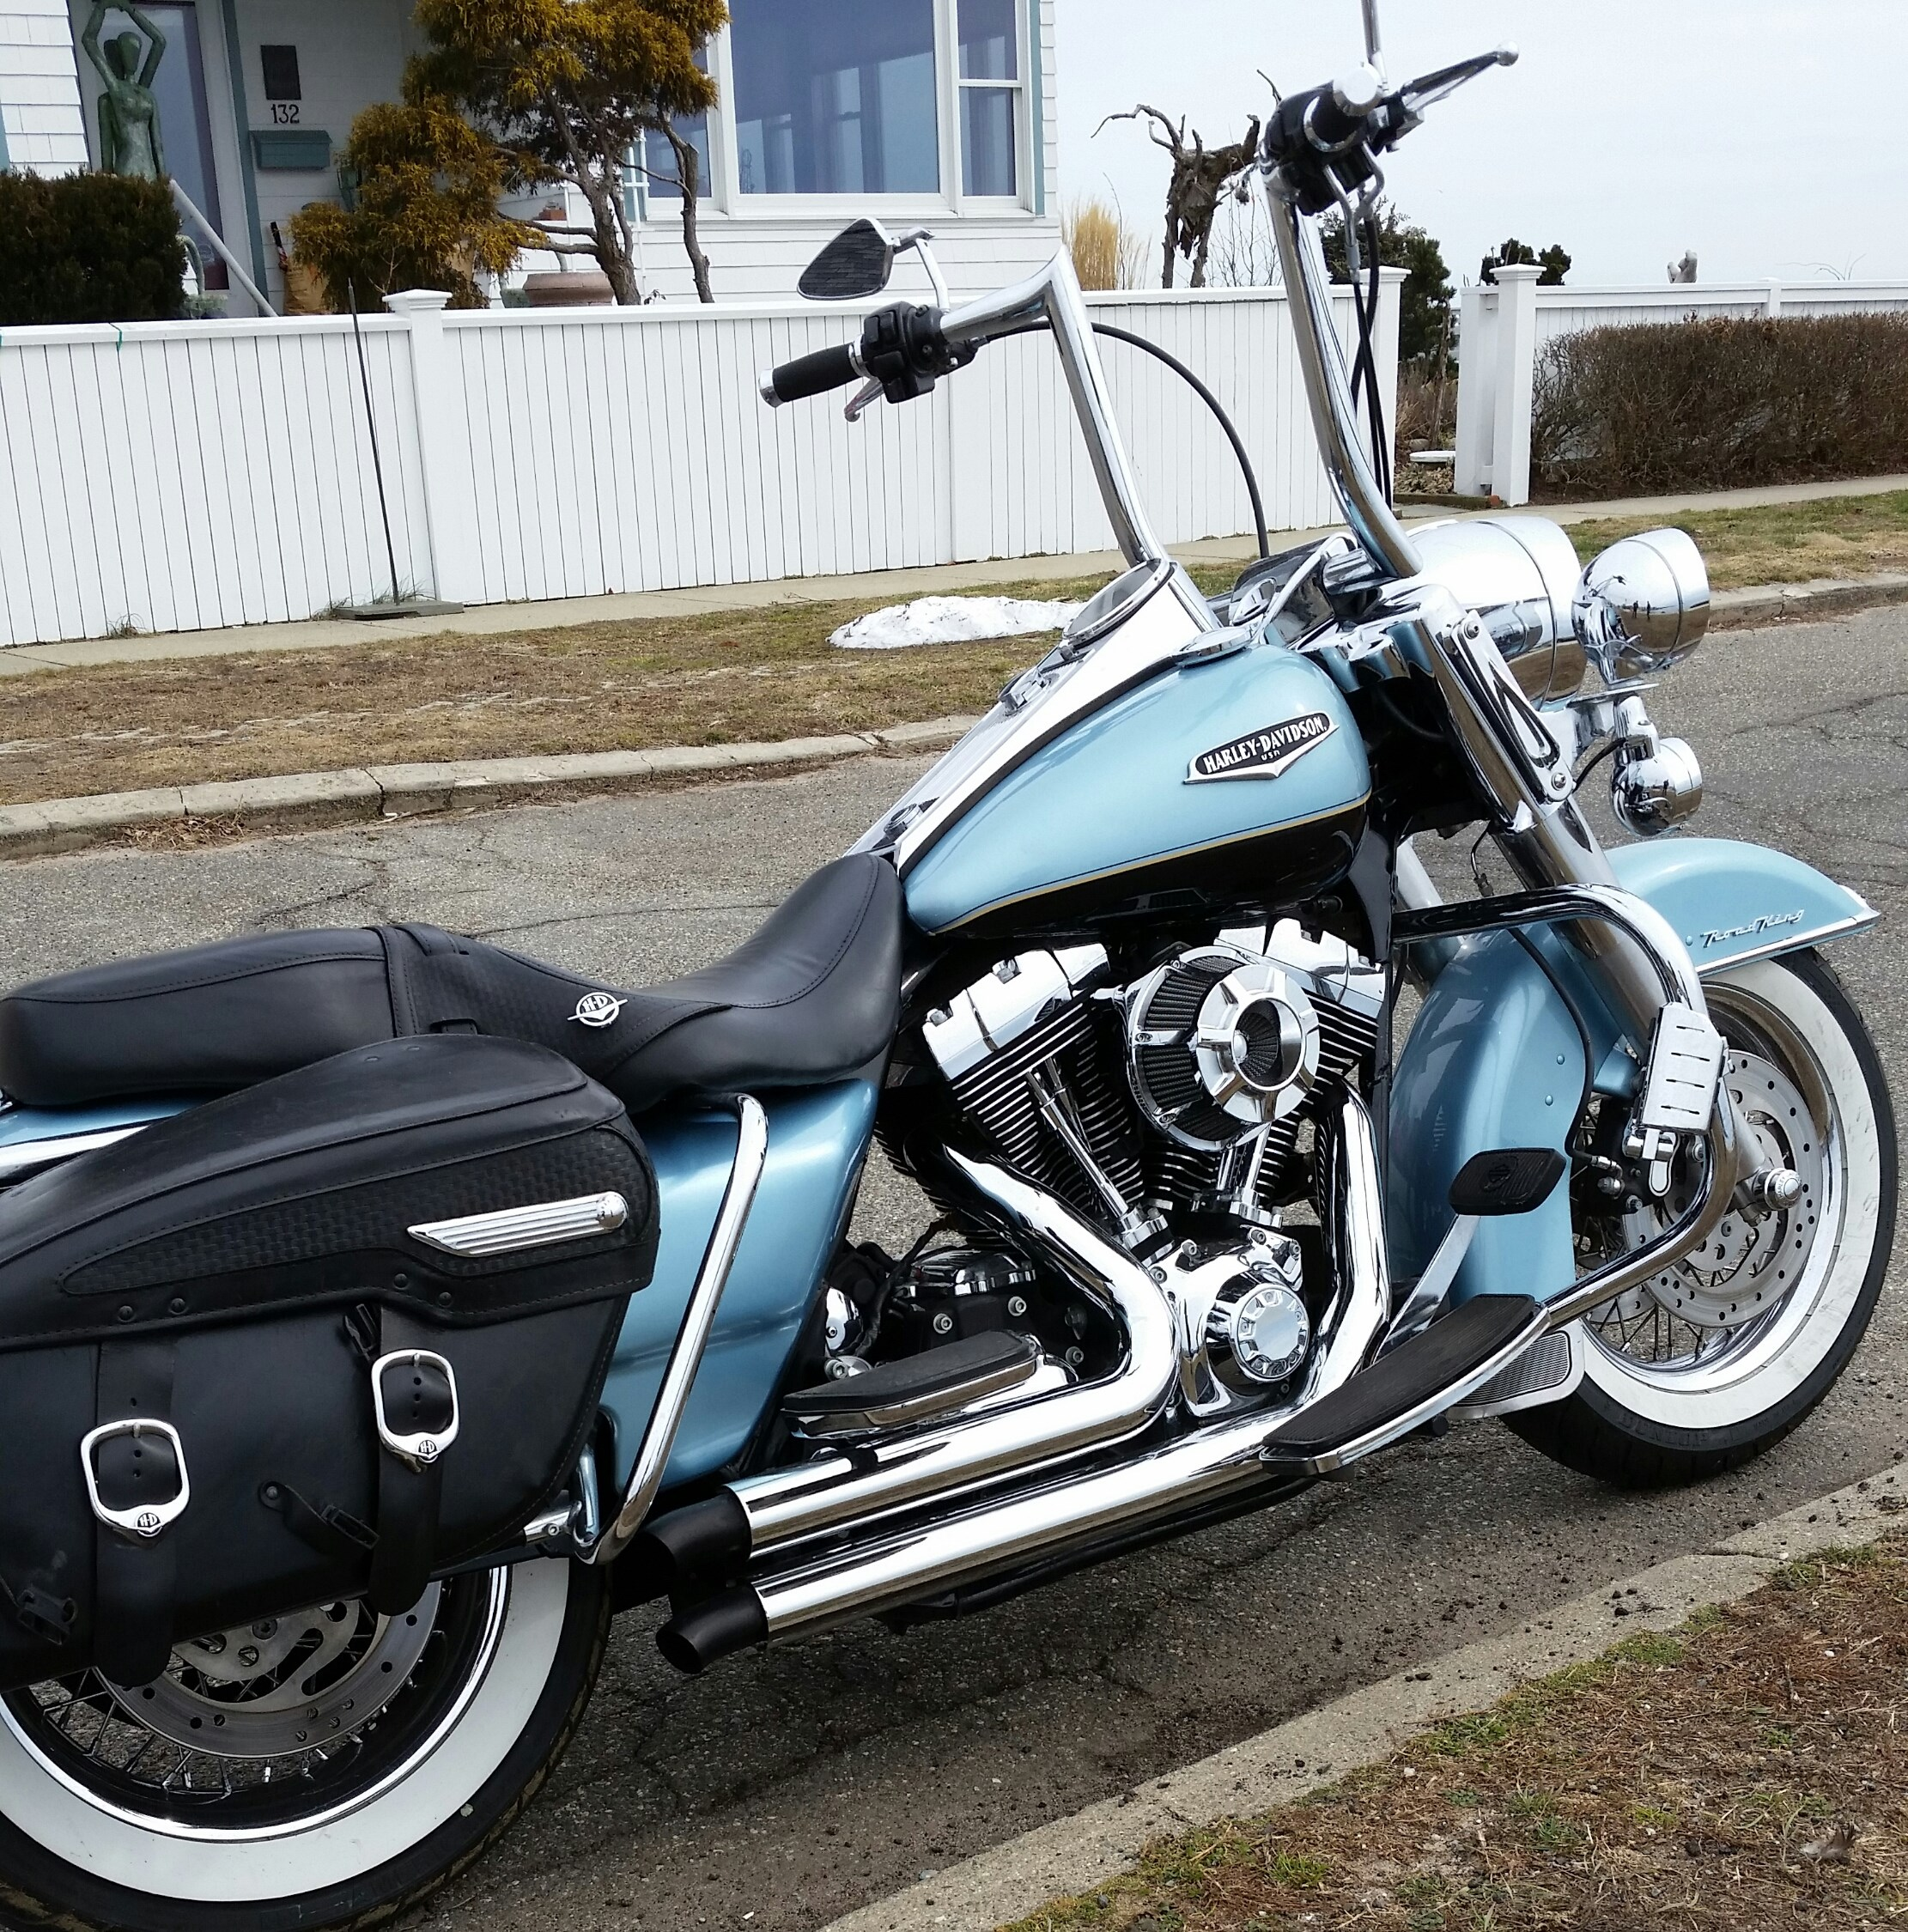 2007 harley davidson flhrc road king classic suede blue stratford connecticut 643258. Black Bedroom Furniture Sets. Home Design Ideas